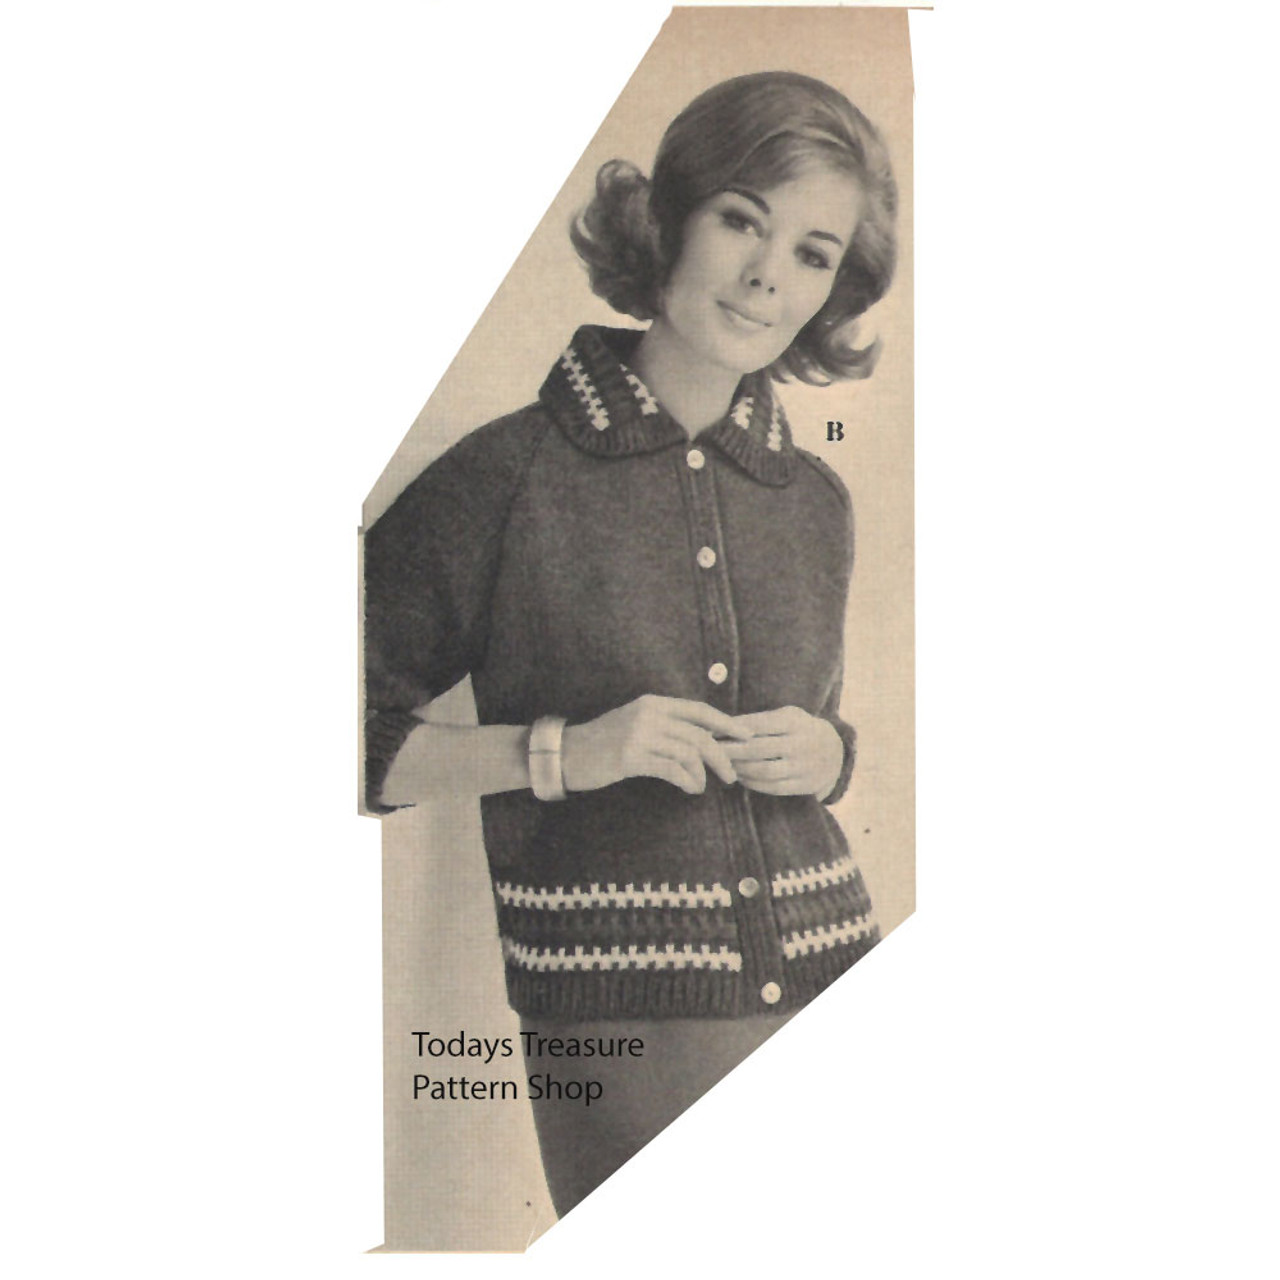 Knitted Cardigan Pattern with Contrast Border Trim